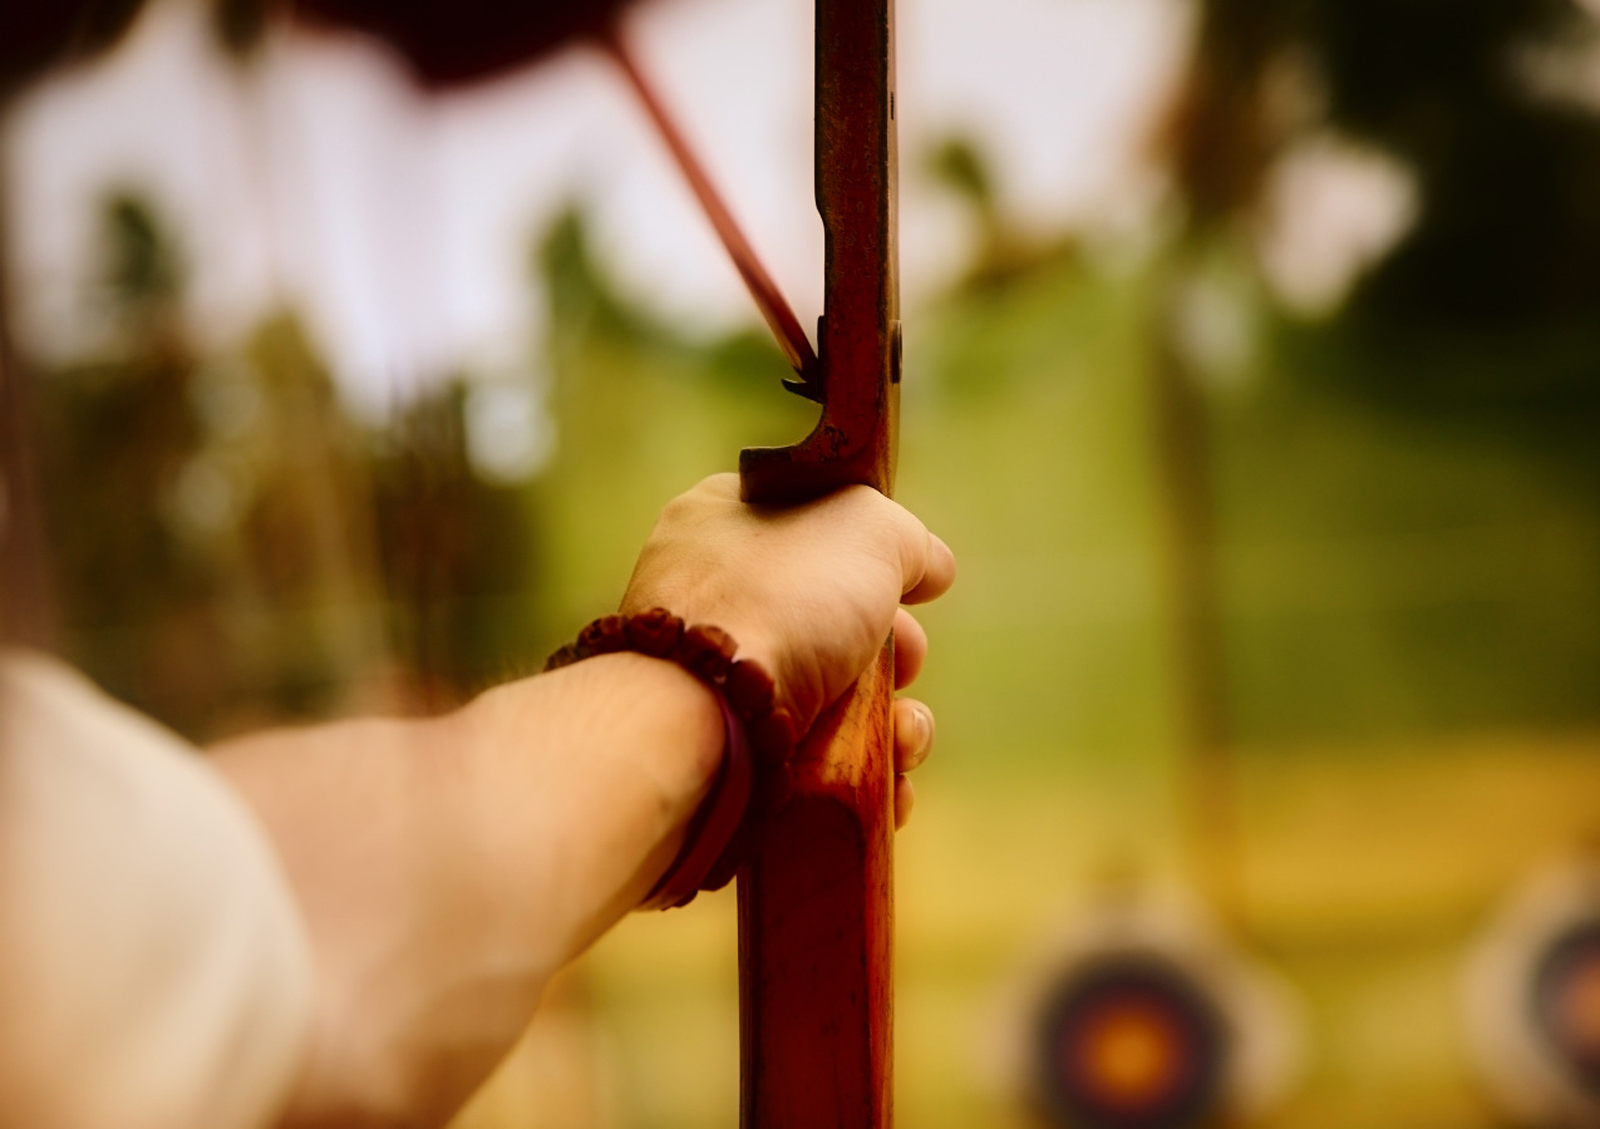 traditional archery wallpaper - photo #12